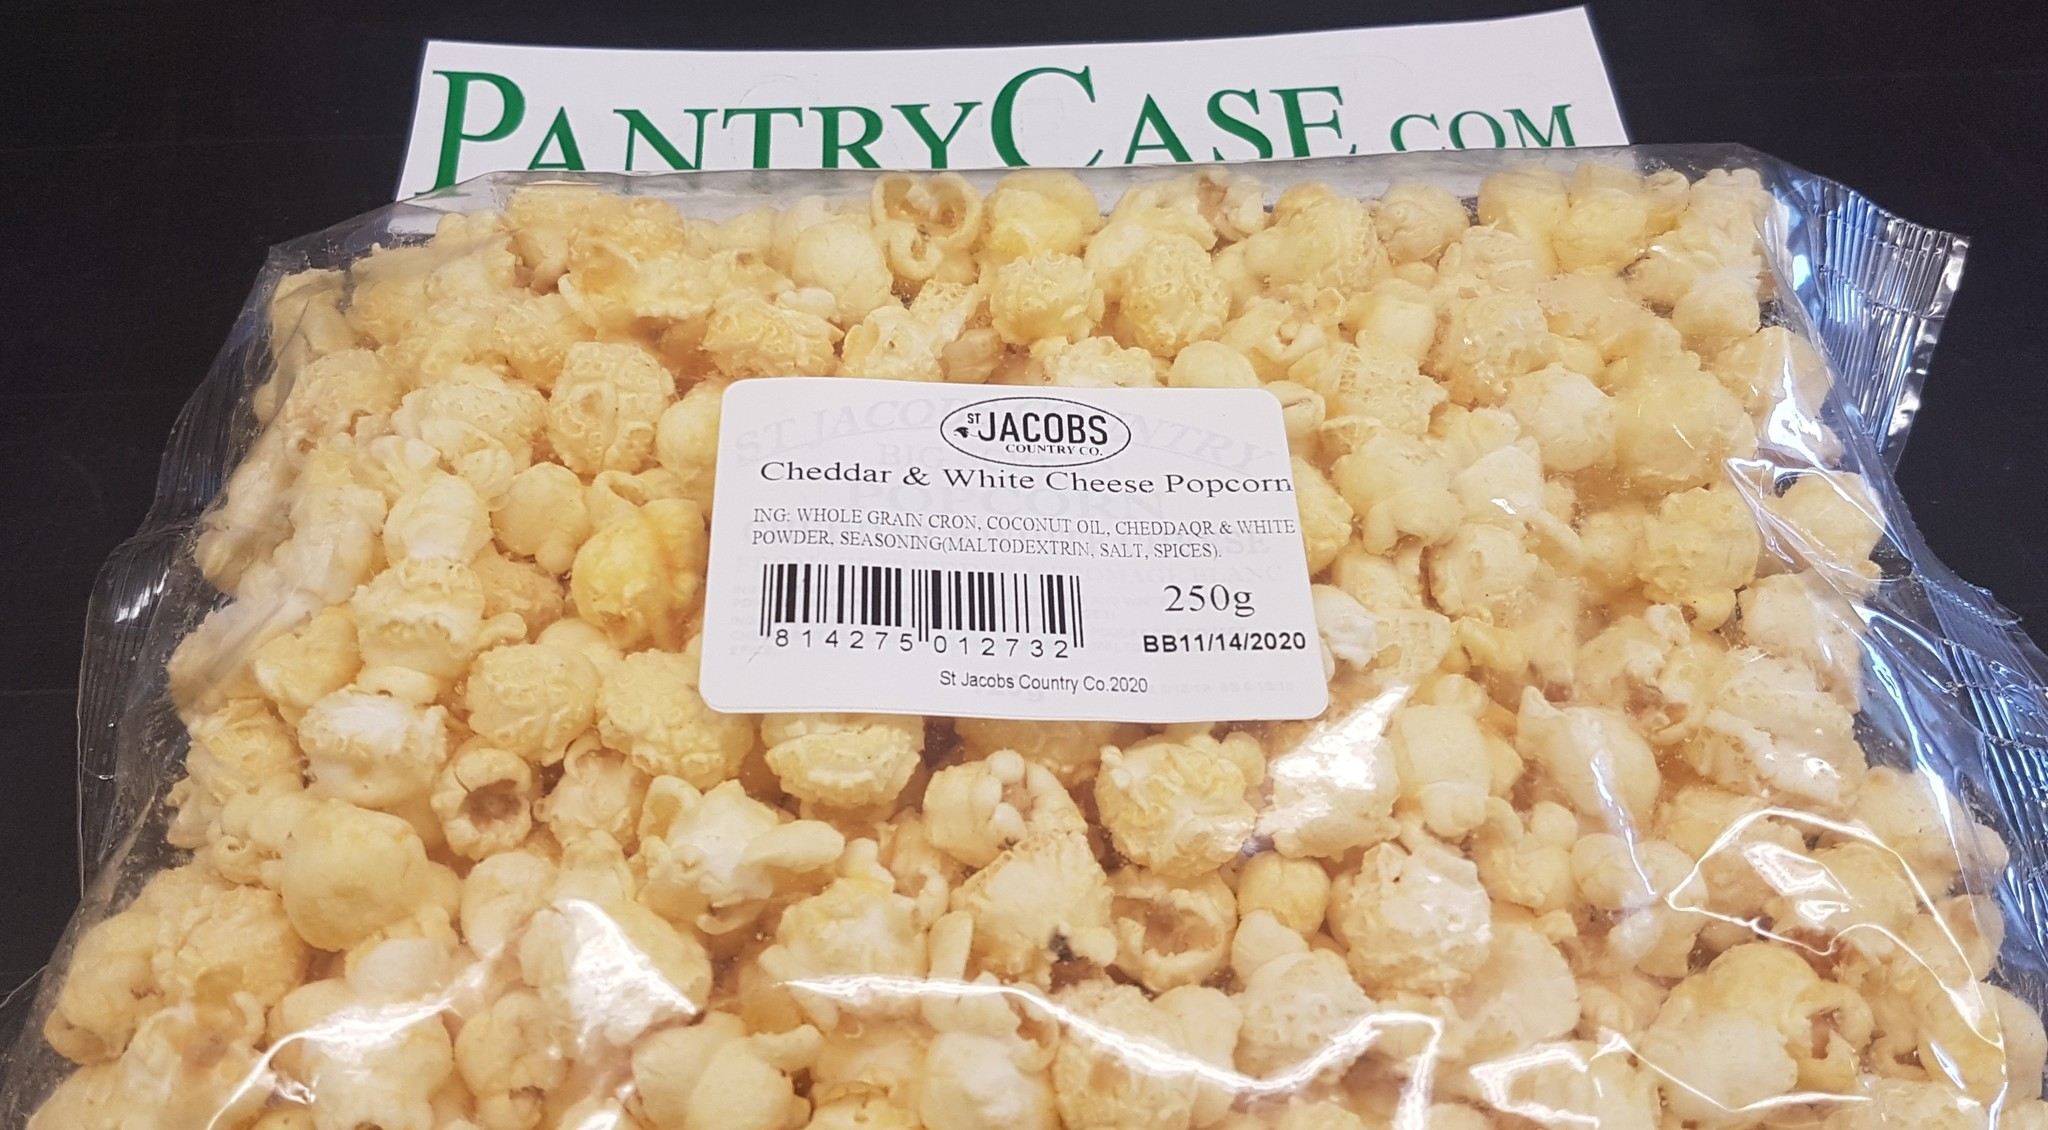 St Jacobs Country Cheddar & White Cheese Popcorn x100g